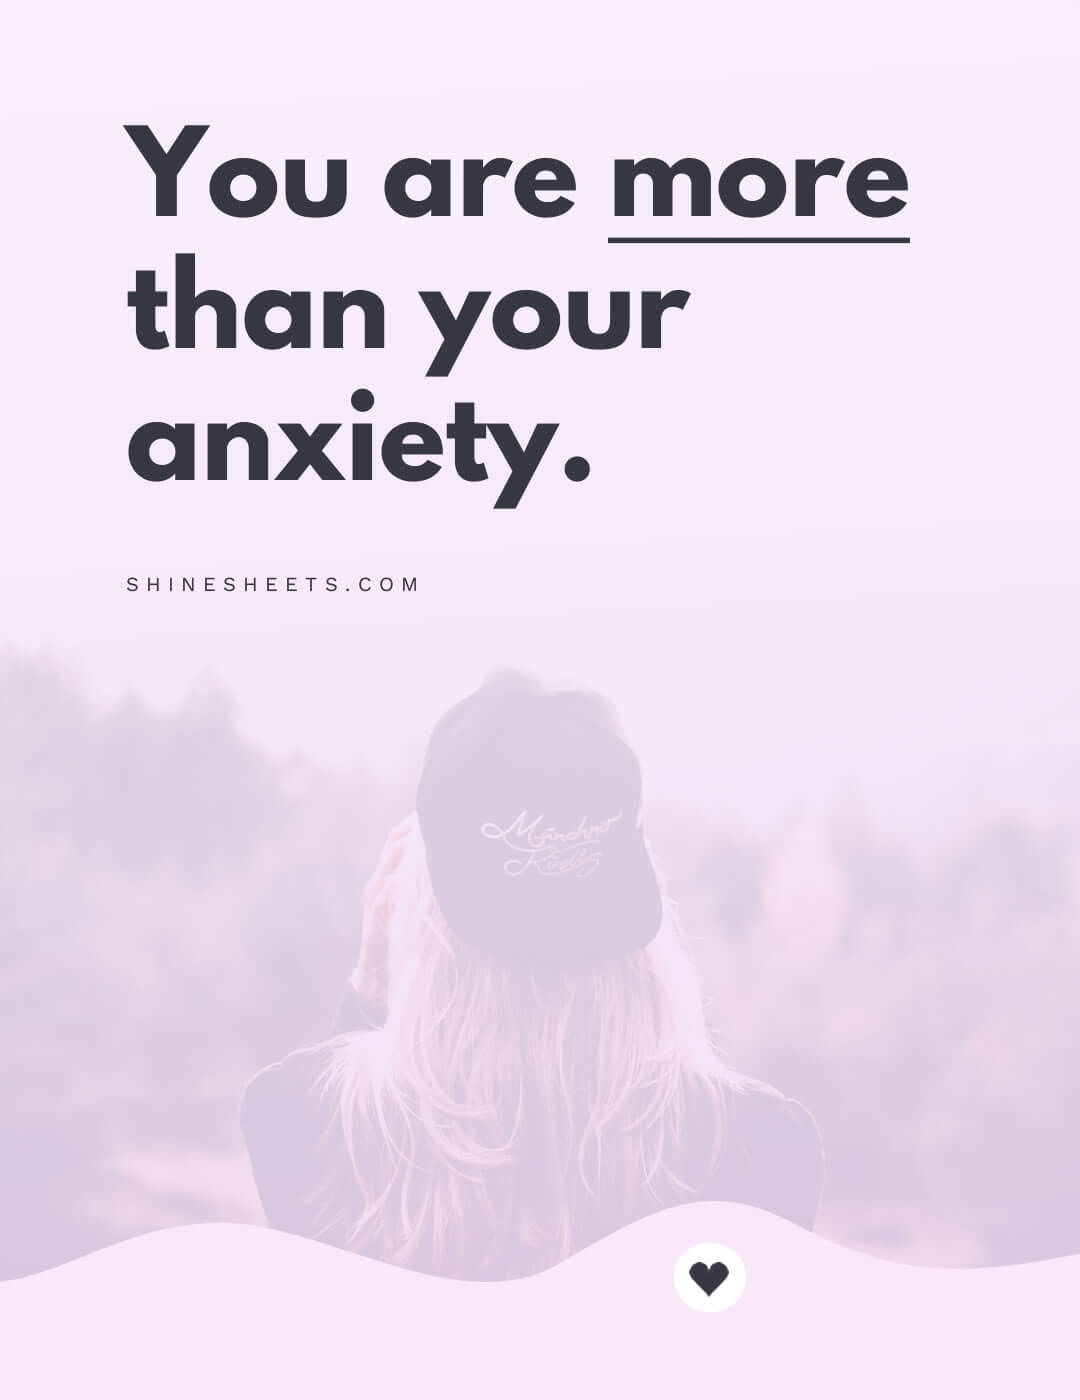 An inspiring quote about personal goals and anxiety